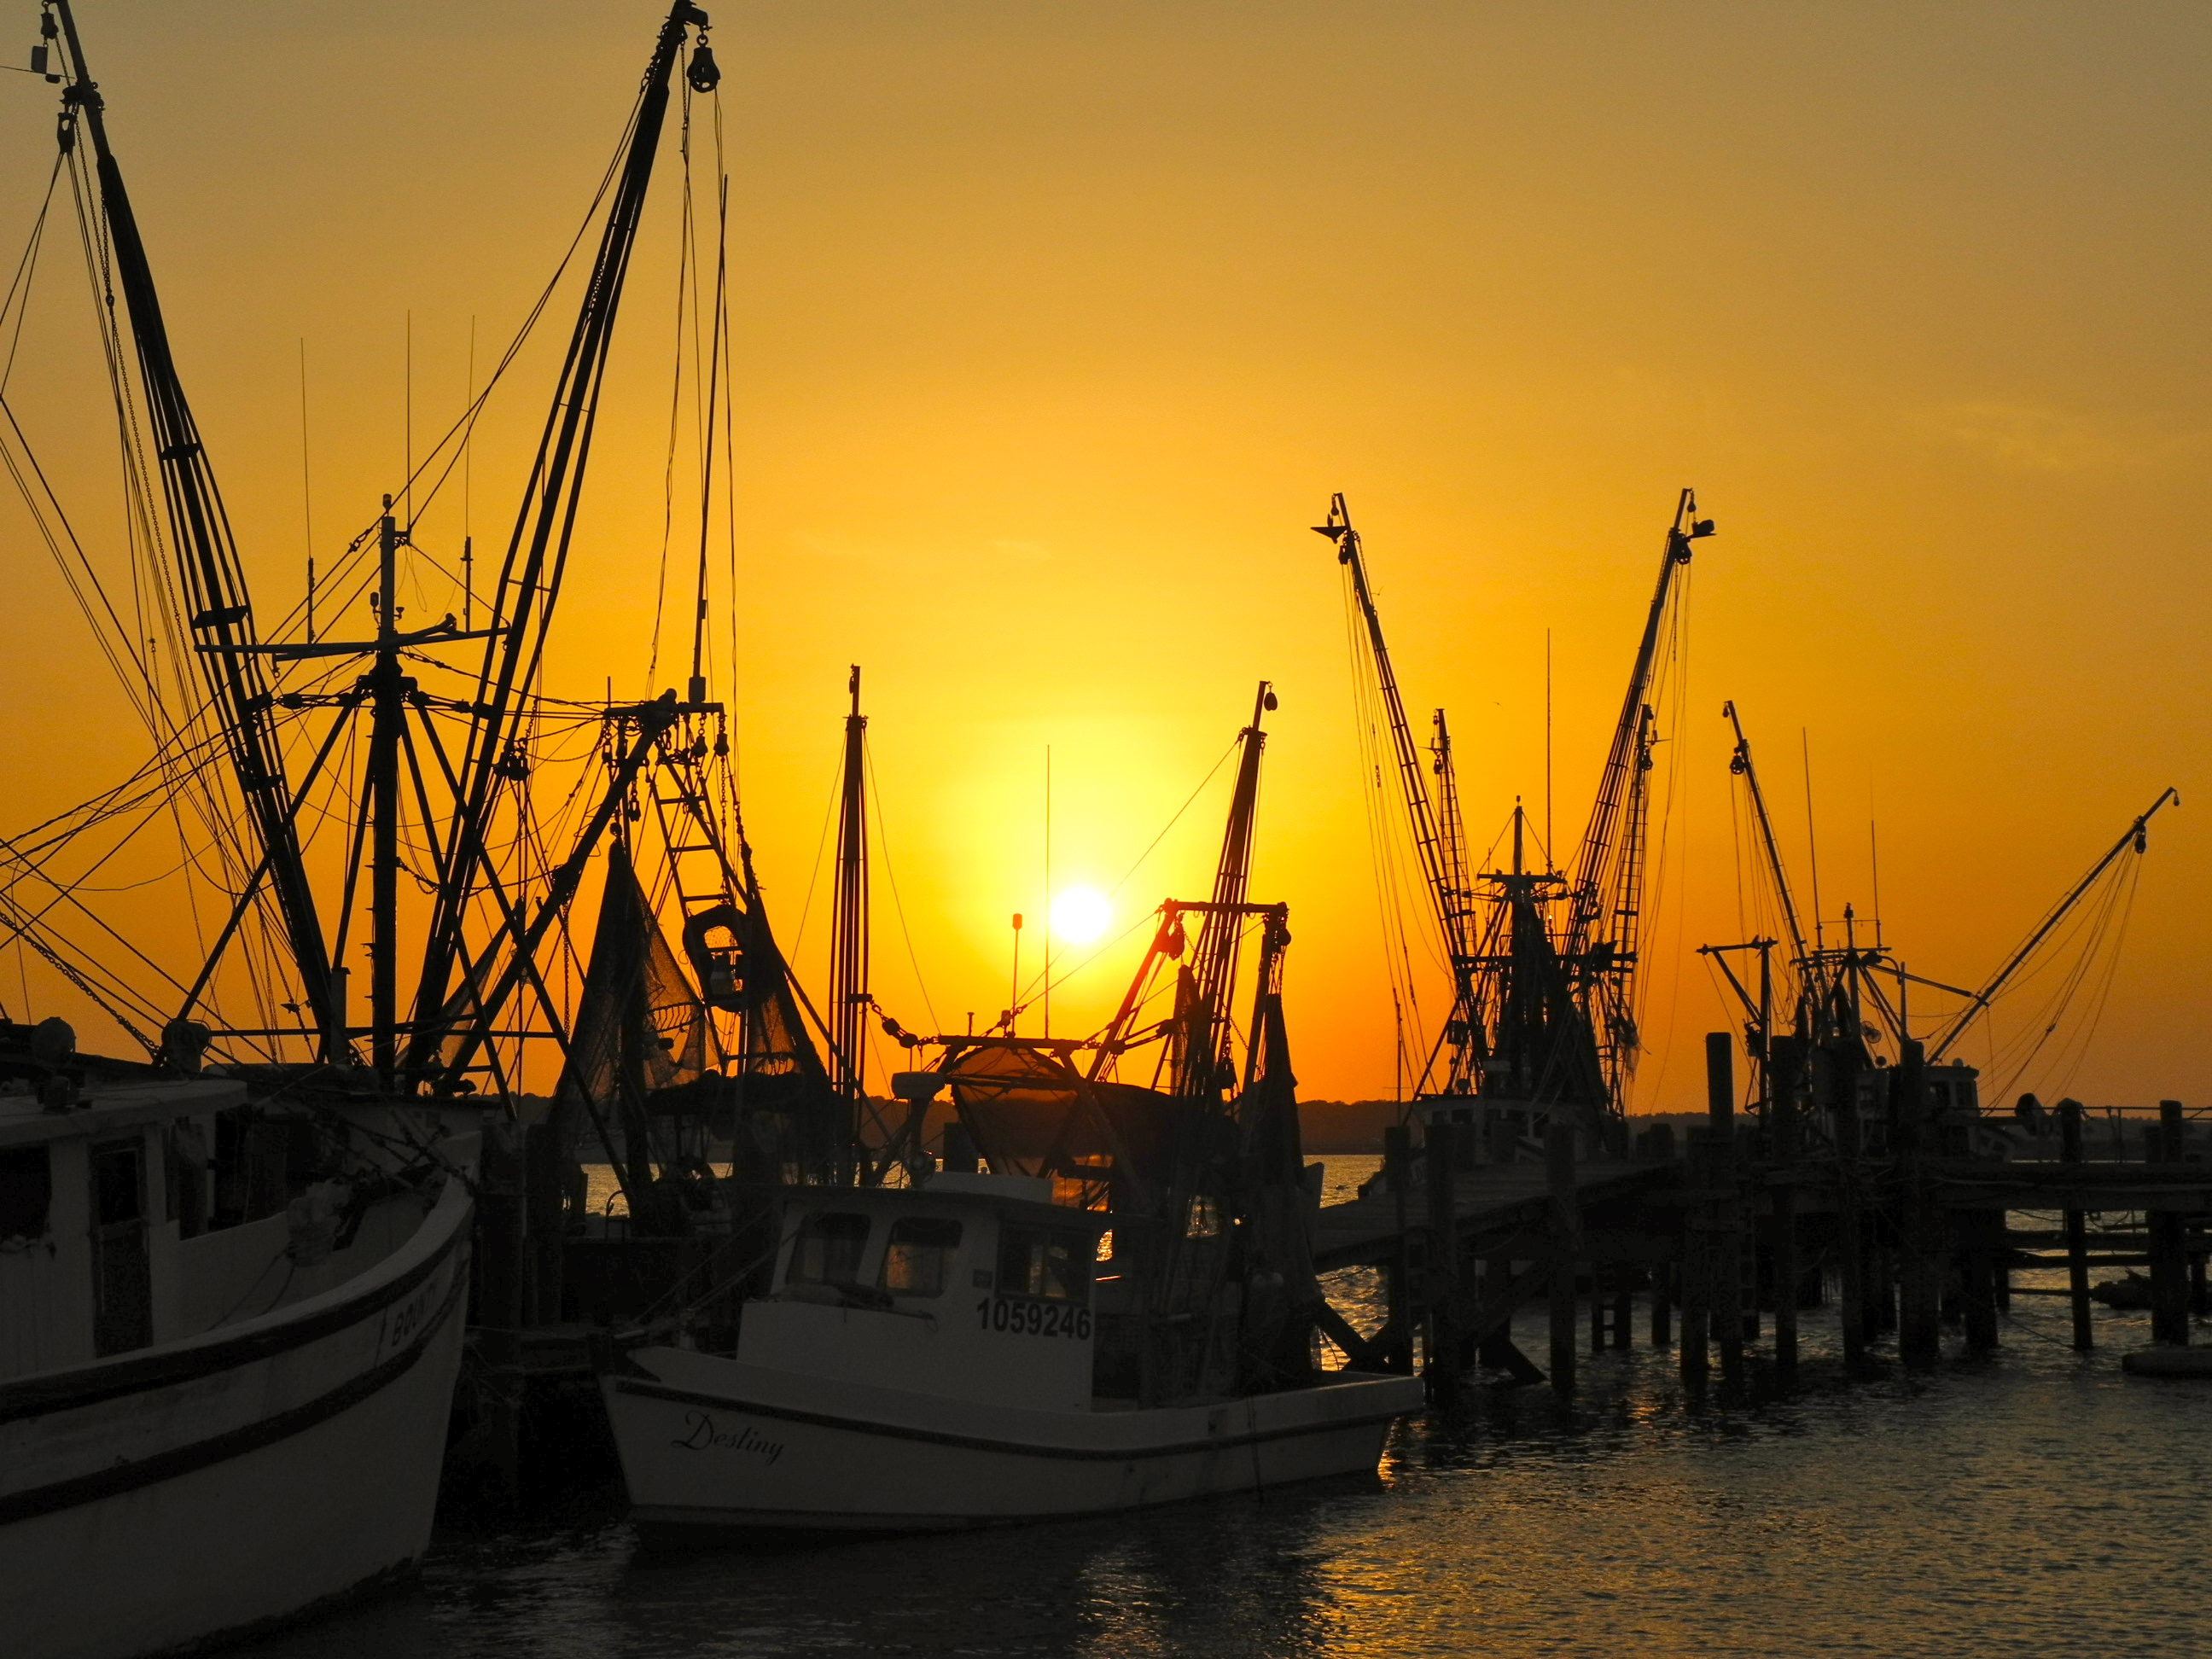 Day Trips - South Carolina Lowcountry